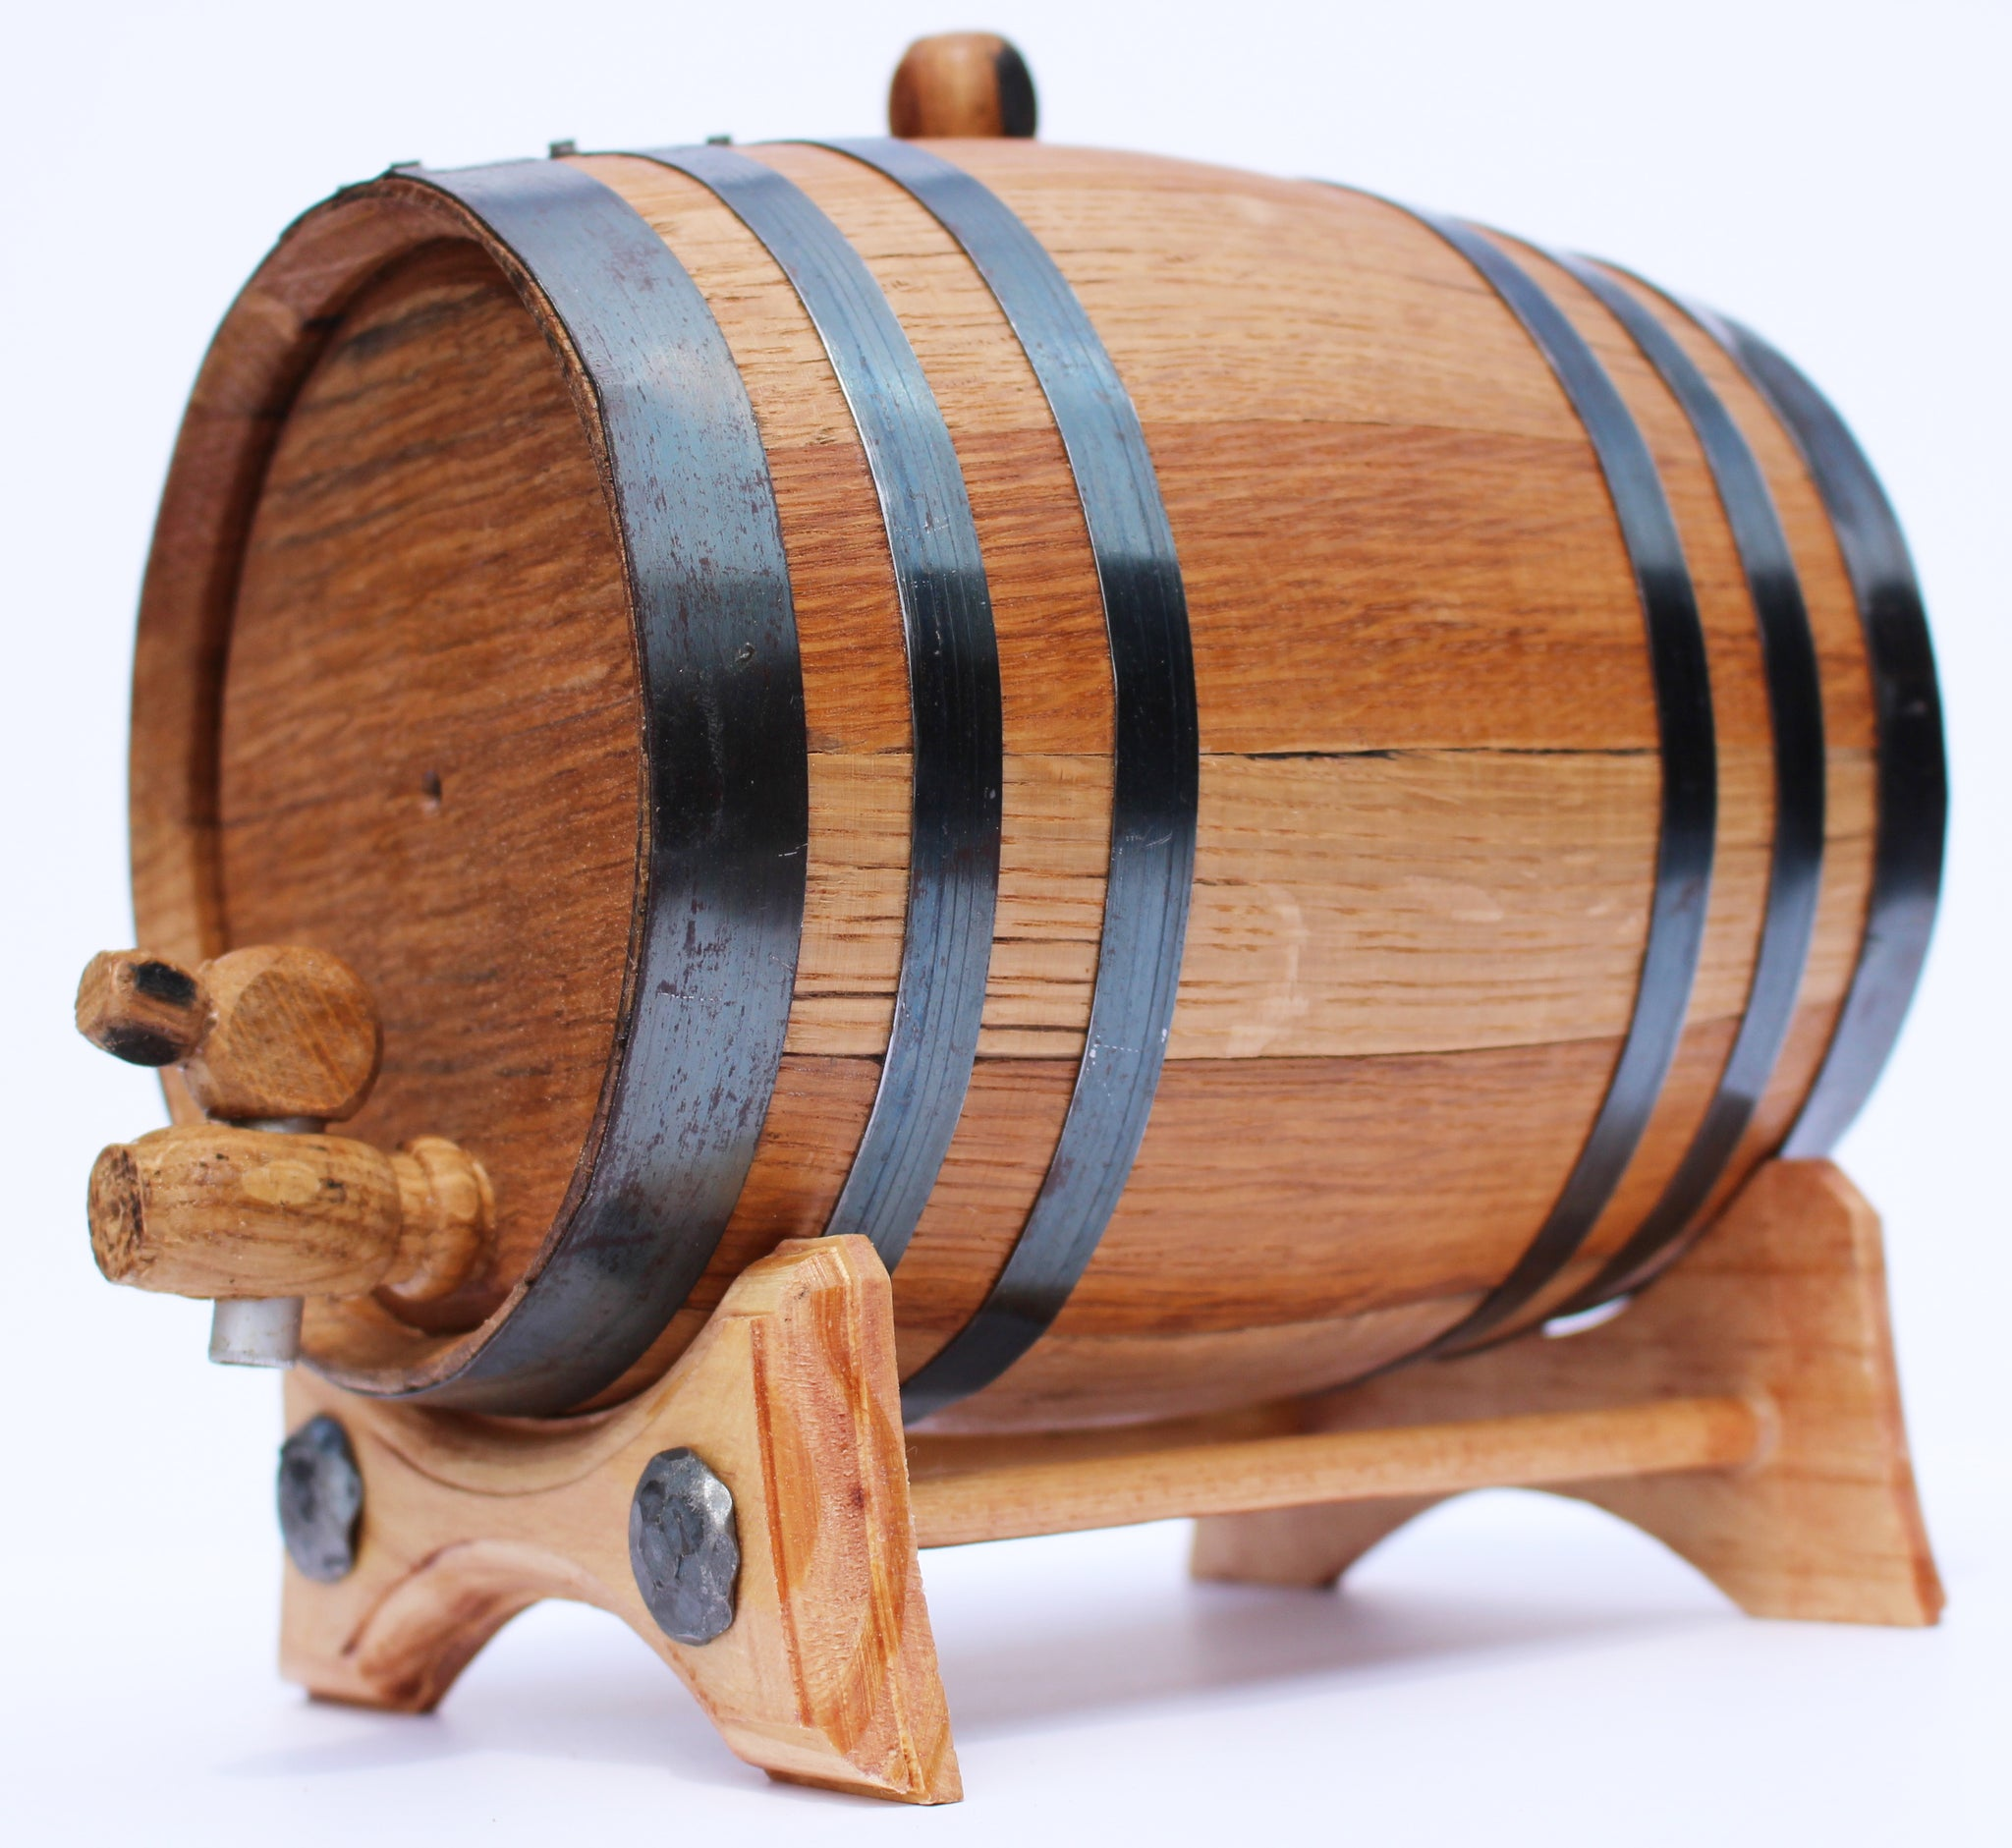 2 Liter Golden Oak Barrel for Aging - Black Steel Hoops - Golden Oak Barrel